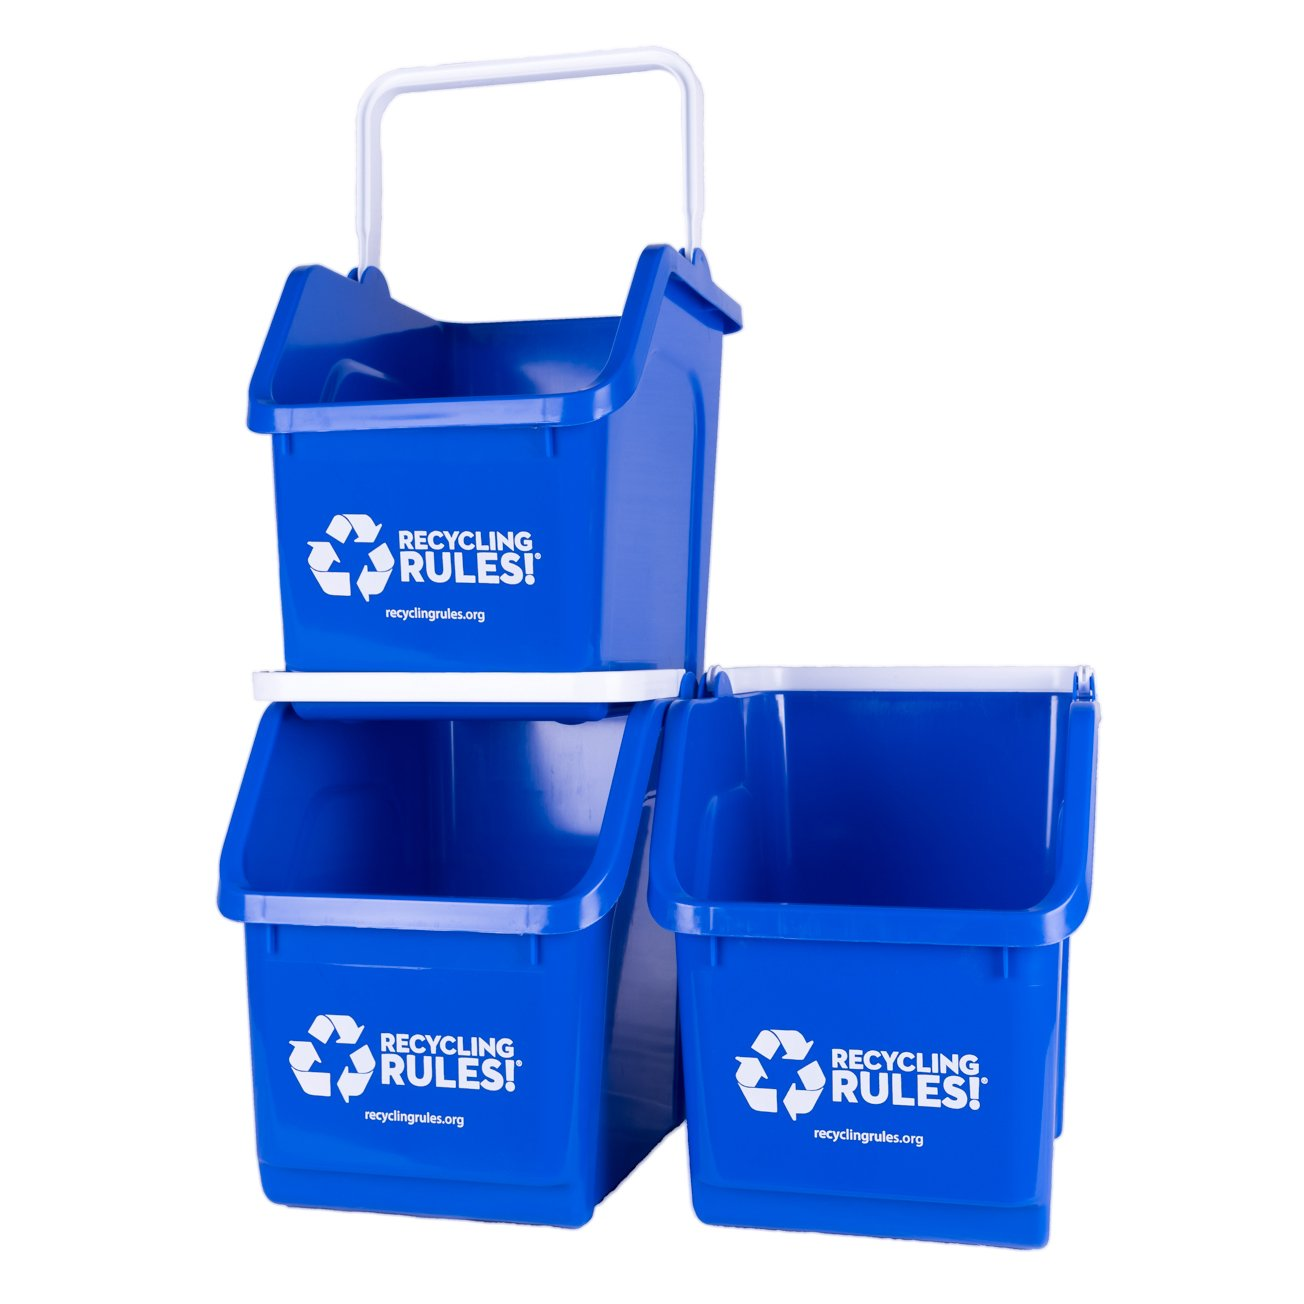 3 Pack of Bins - Blue Stackable Recycling Bin Container with Handle 6 Gallon